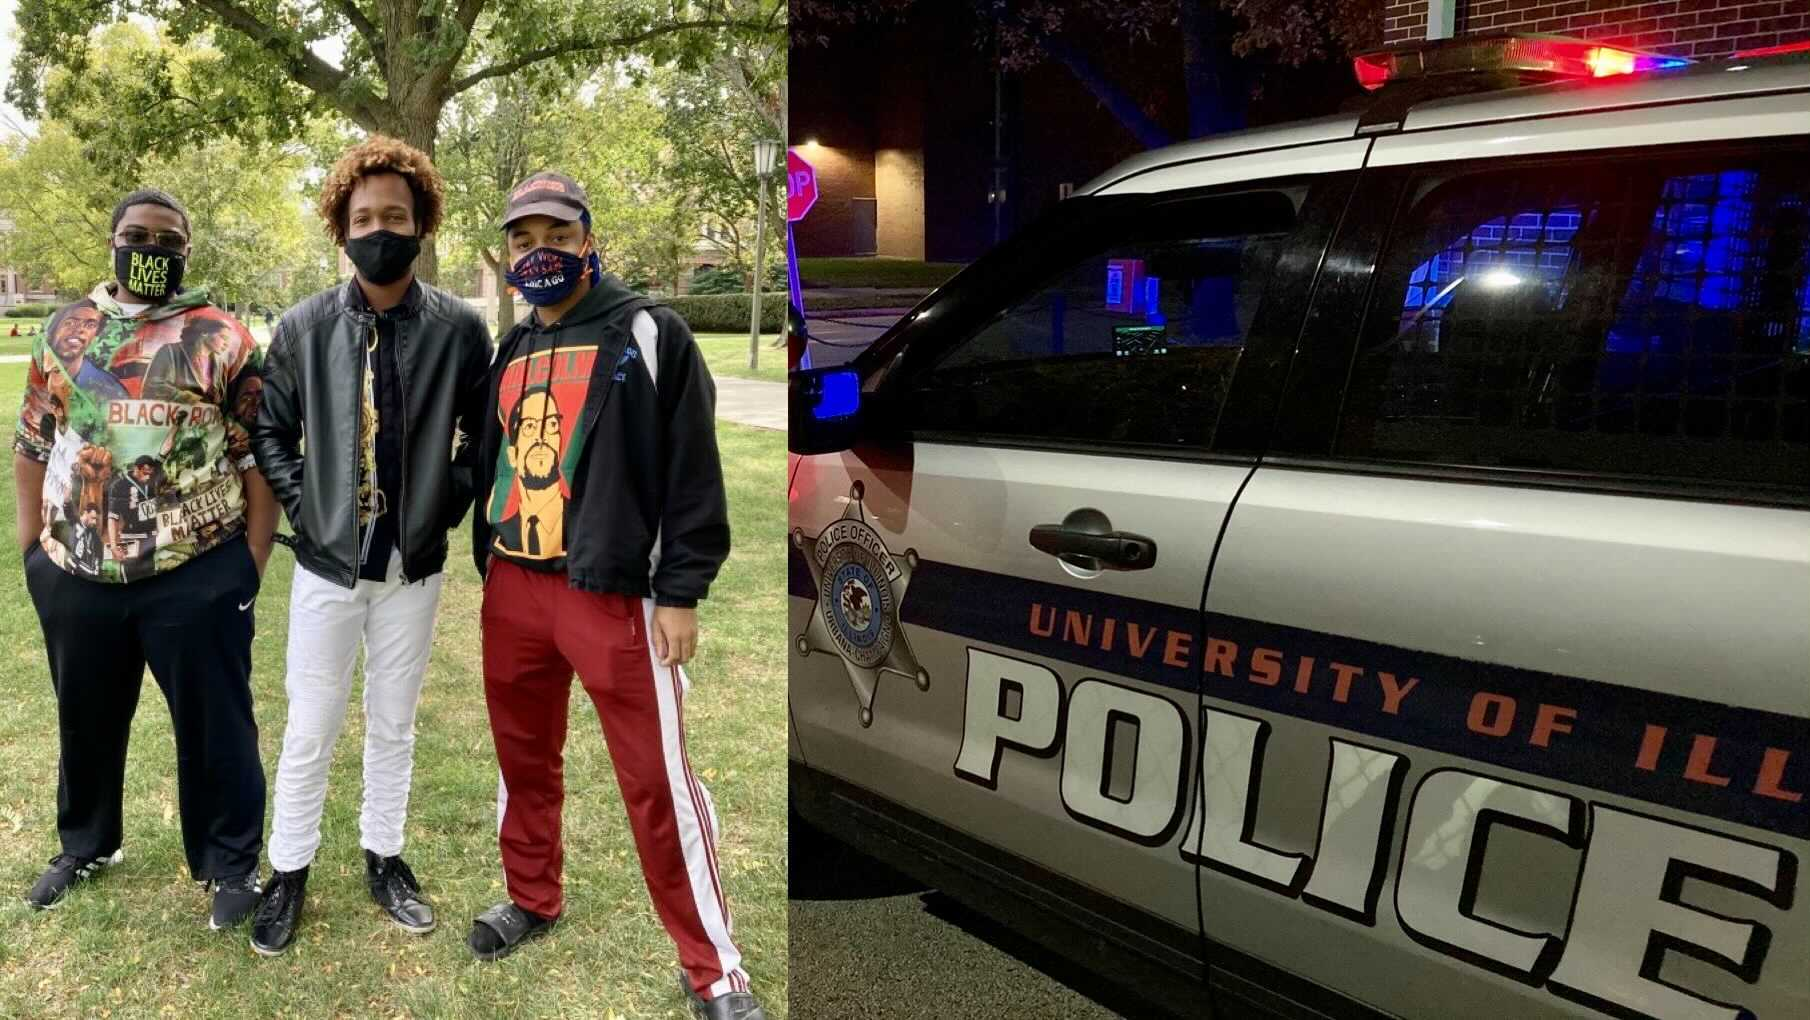 From left to right: Latrel Crawford, William Burke, Leojae Bleu Steward, all seniors at the University of Illinois' Urbana campus, are advocating for the defunding and abolishment of the University of Illinois Police Department, saying the officers target students of color.